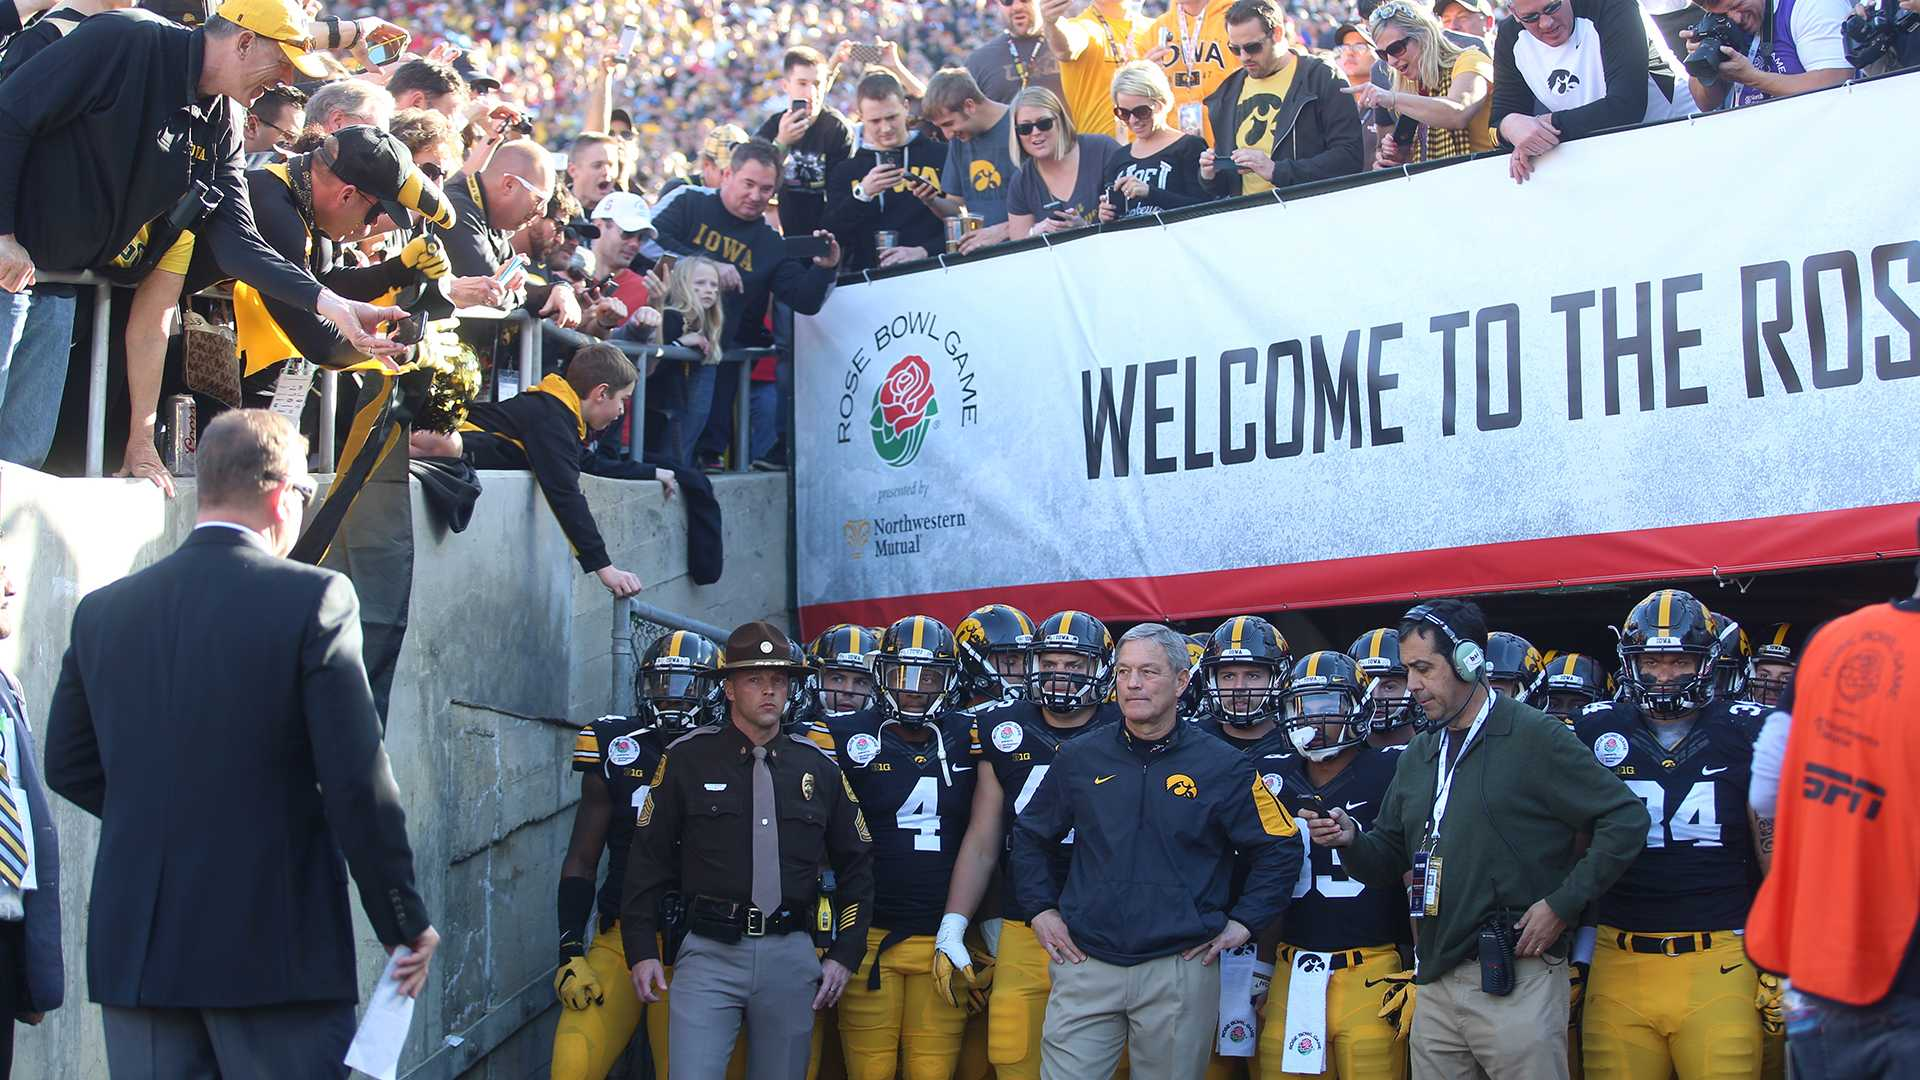 A look back: The Hawkeyes and The Rose Bowl